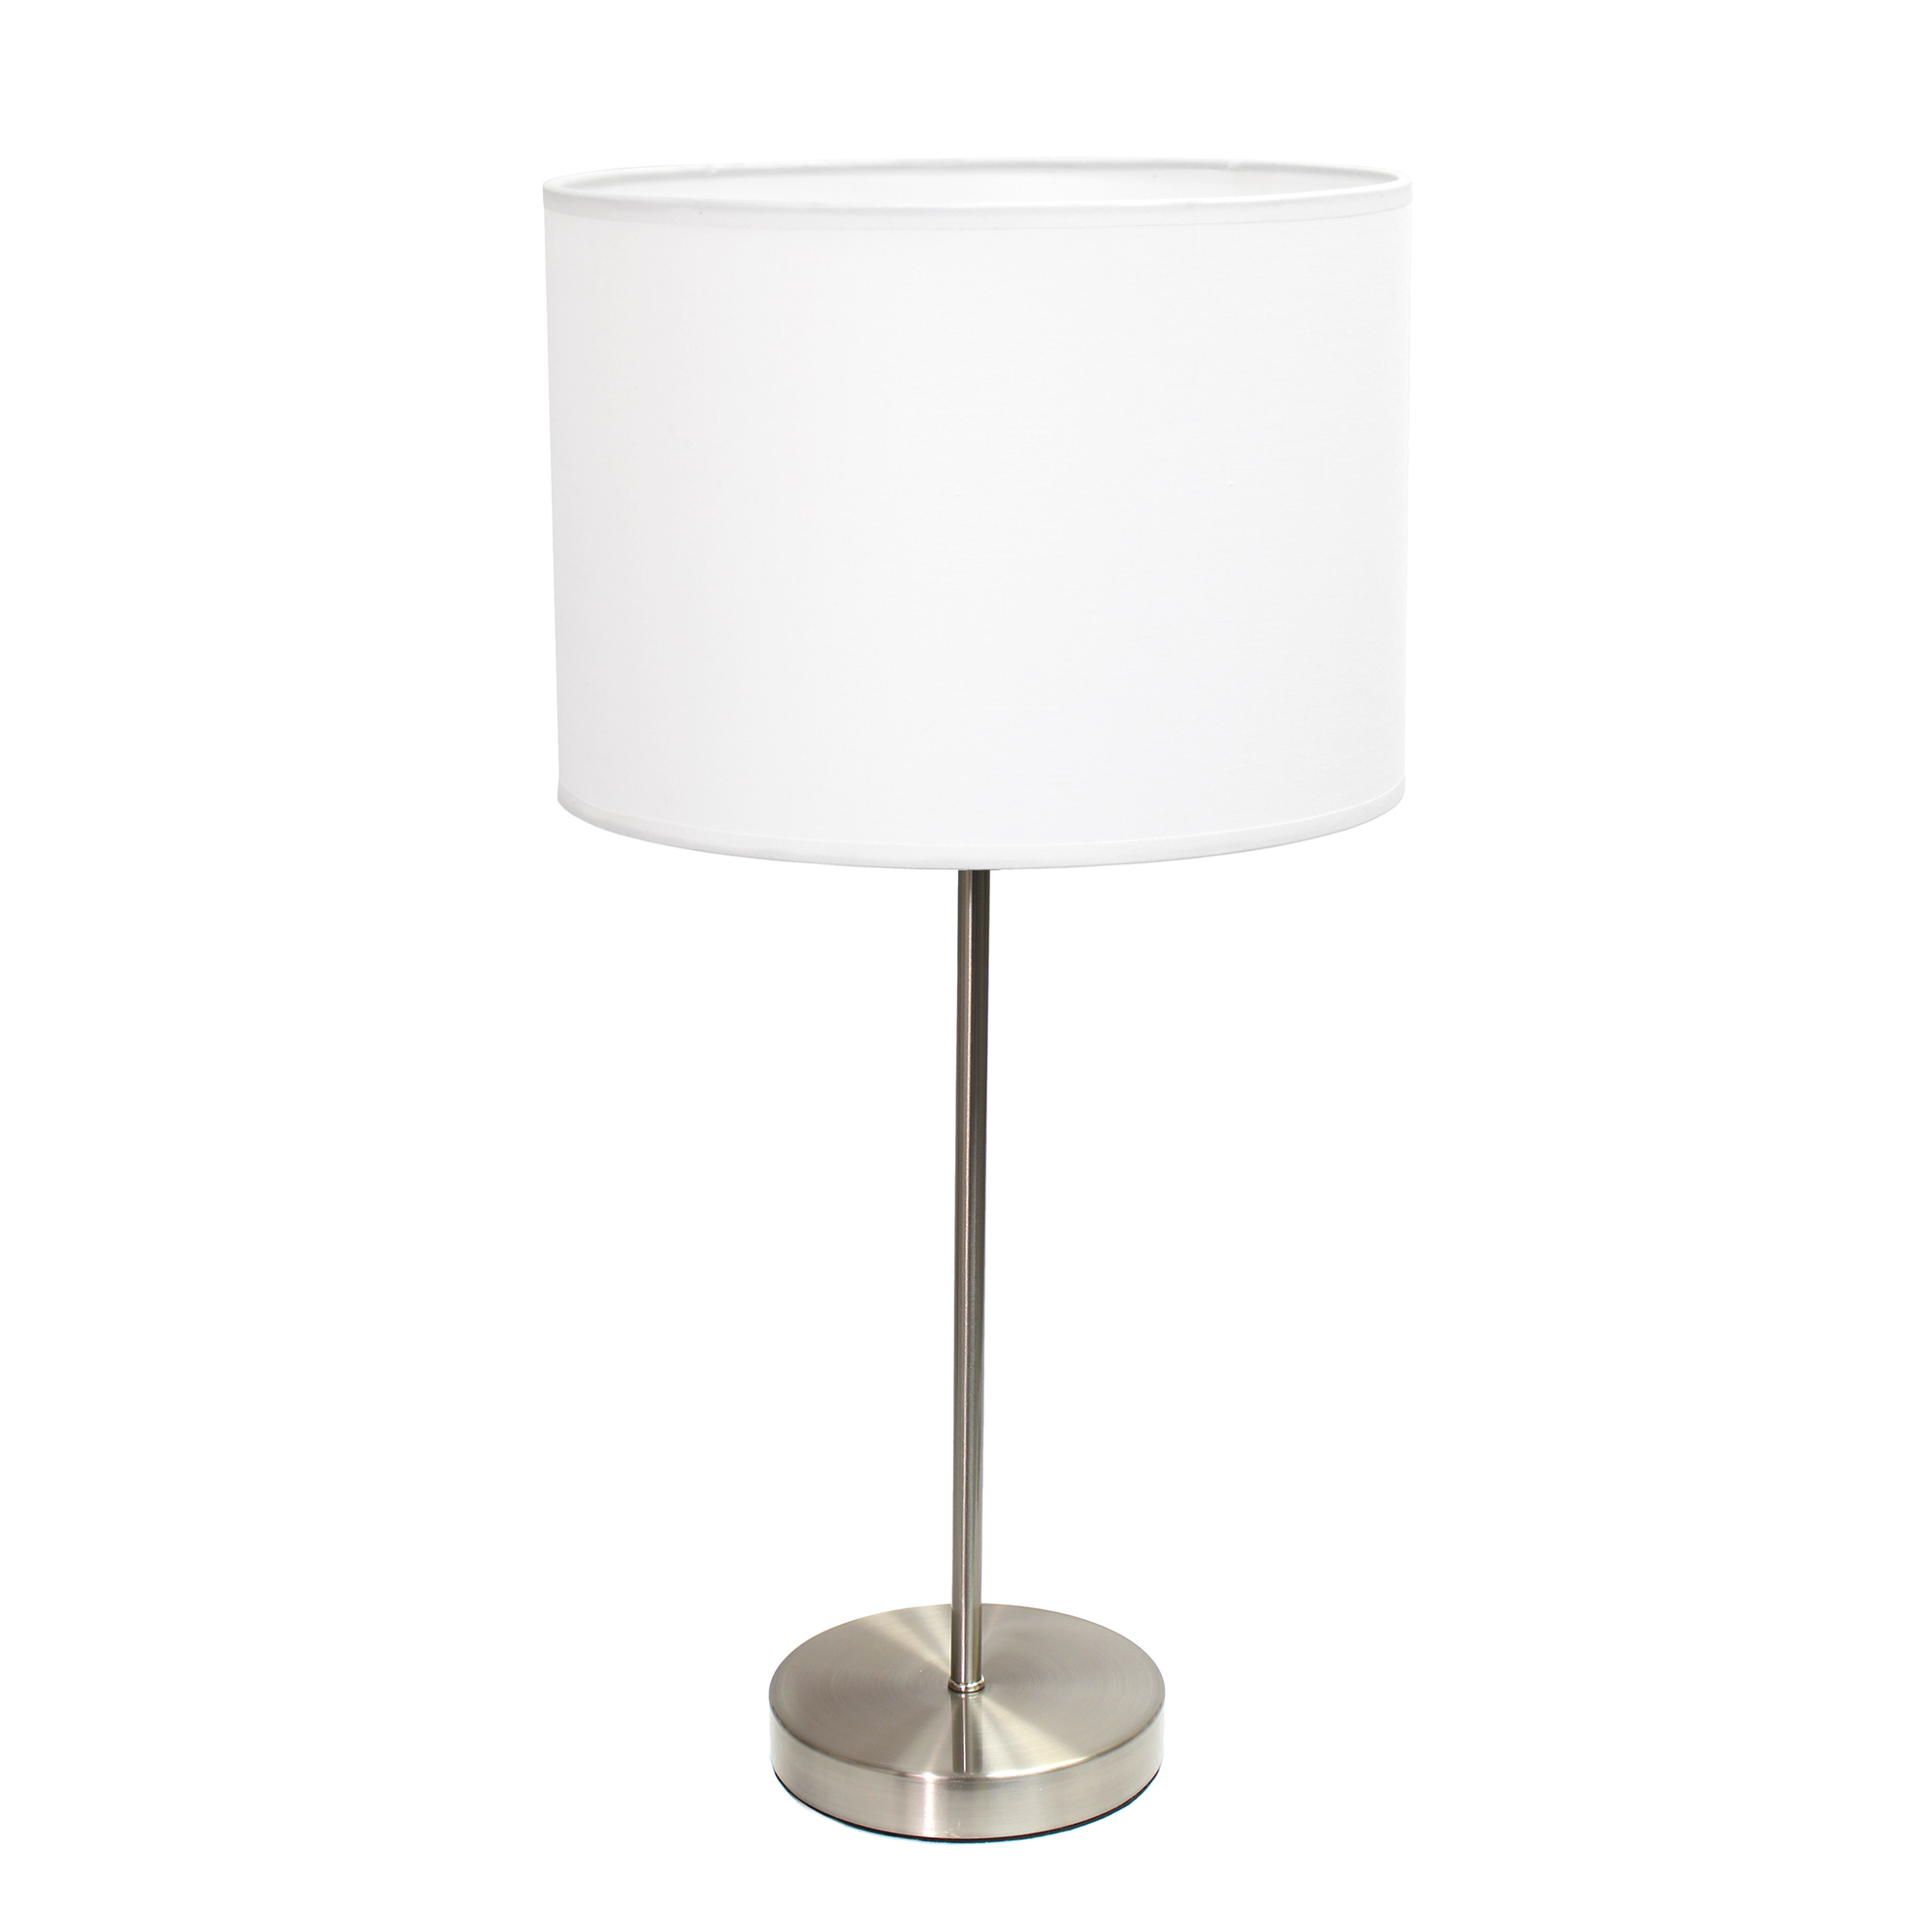 Simple Designs Brushed Nickel Stick Lamp with Fabric Shade, White